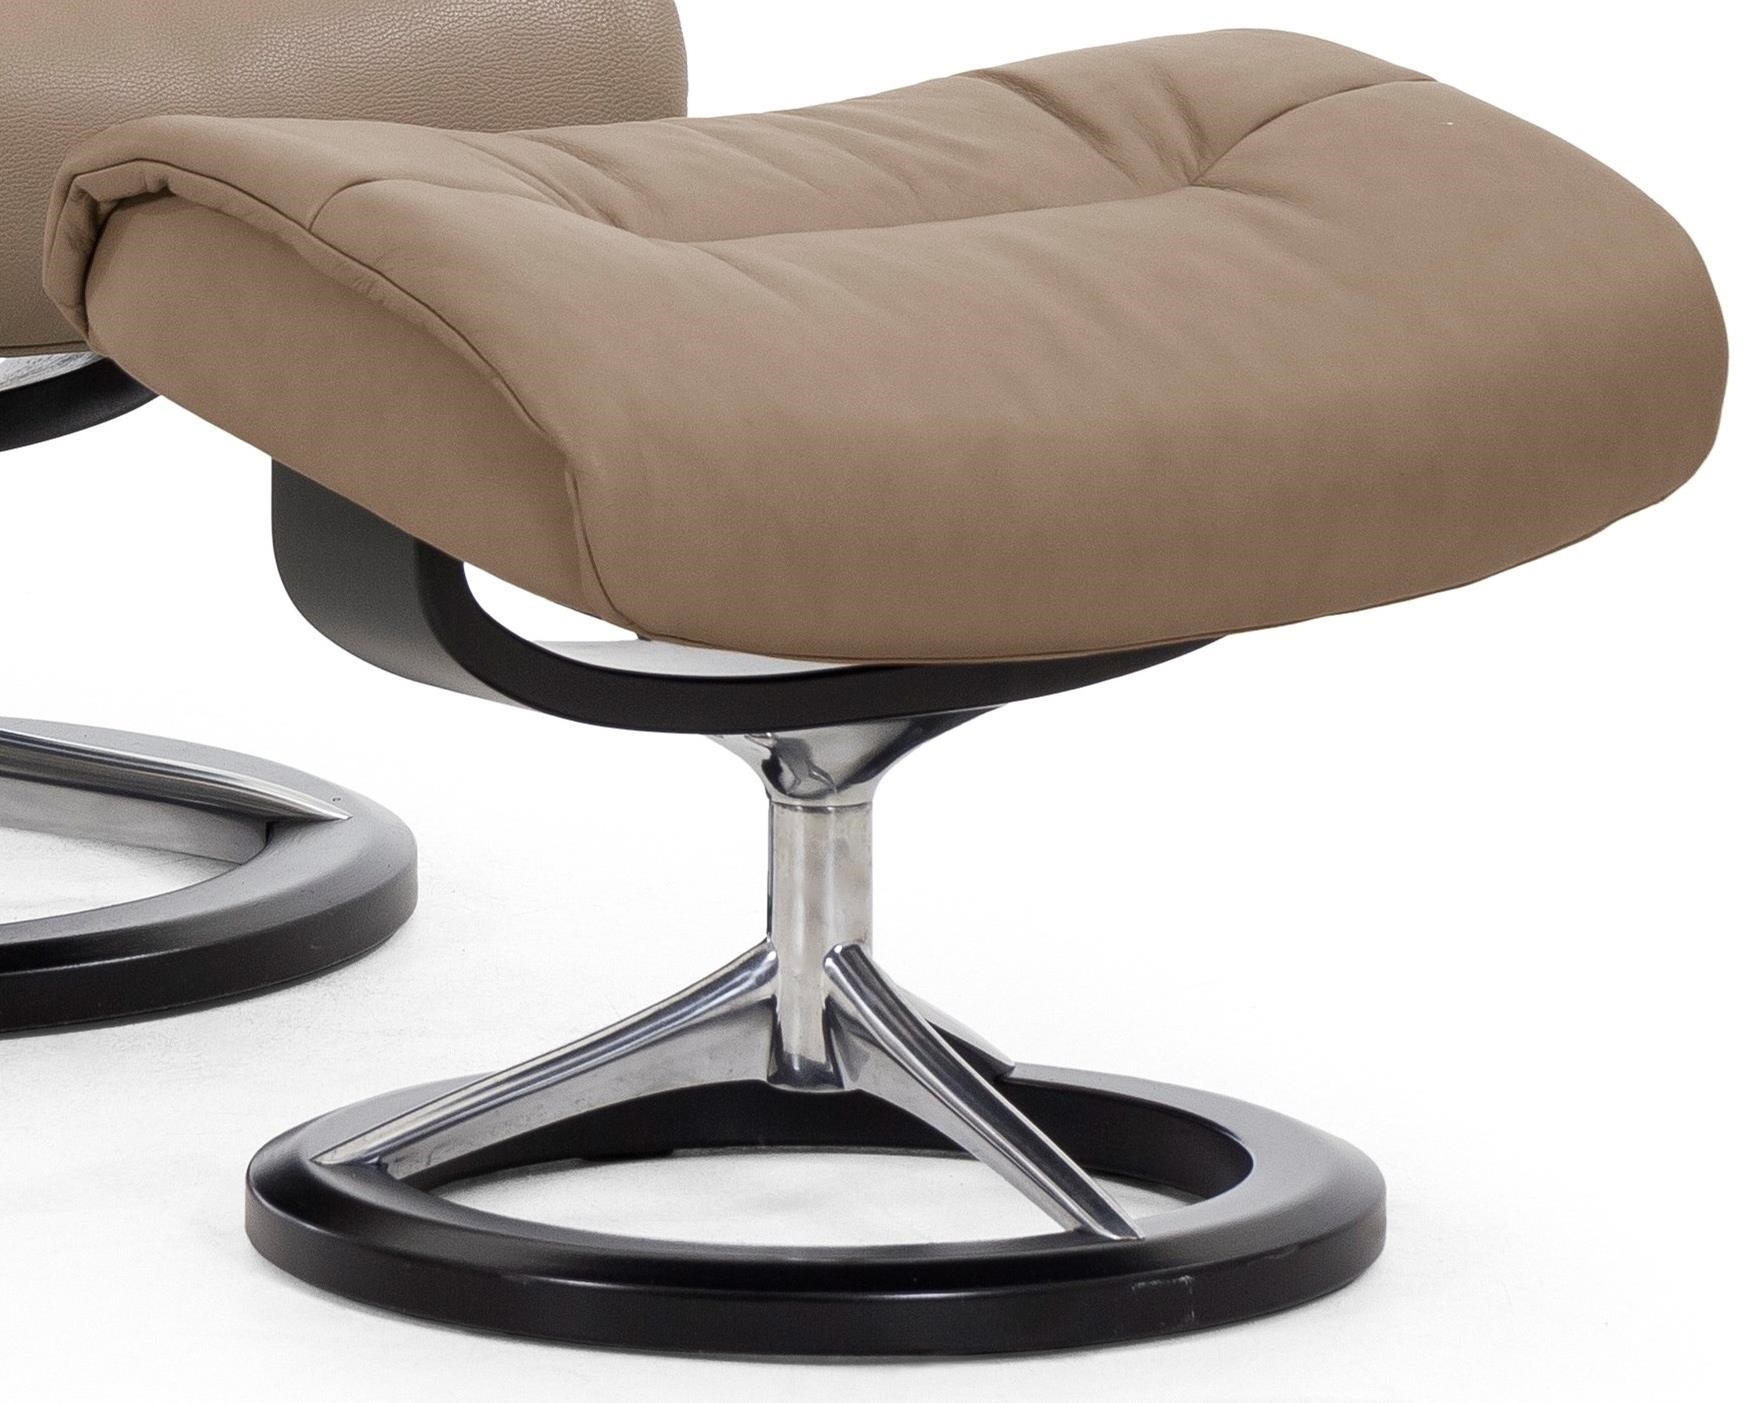 Live Signature Base Ottoman by Stressless at Virginia Furniture Market